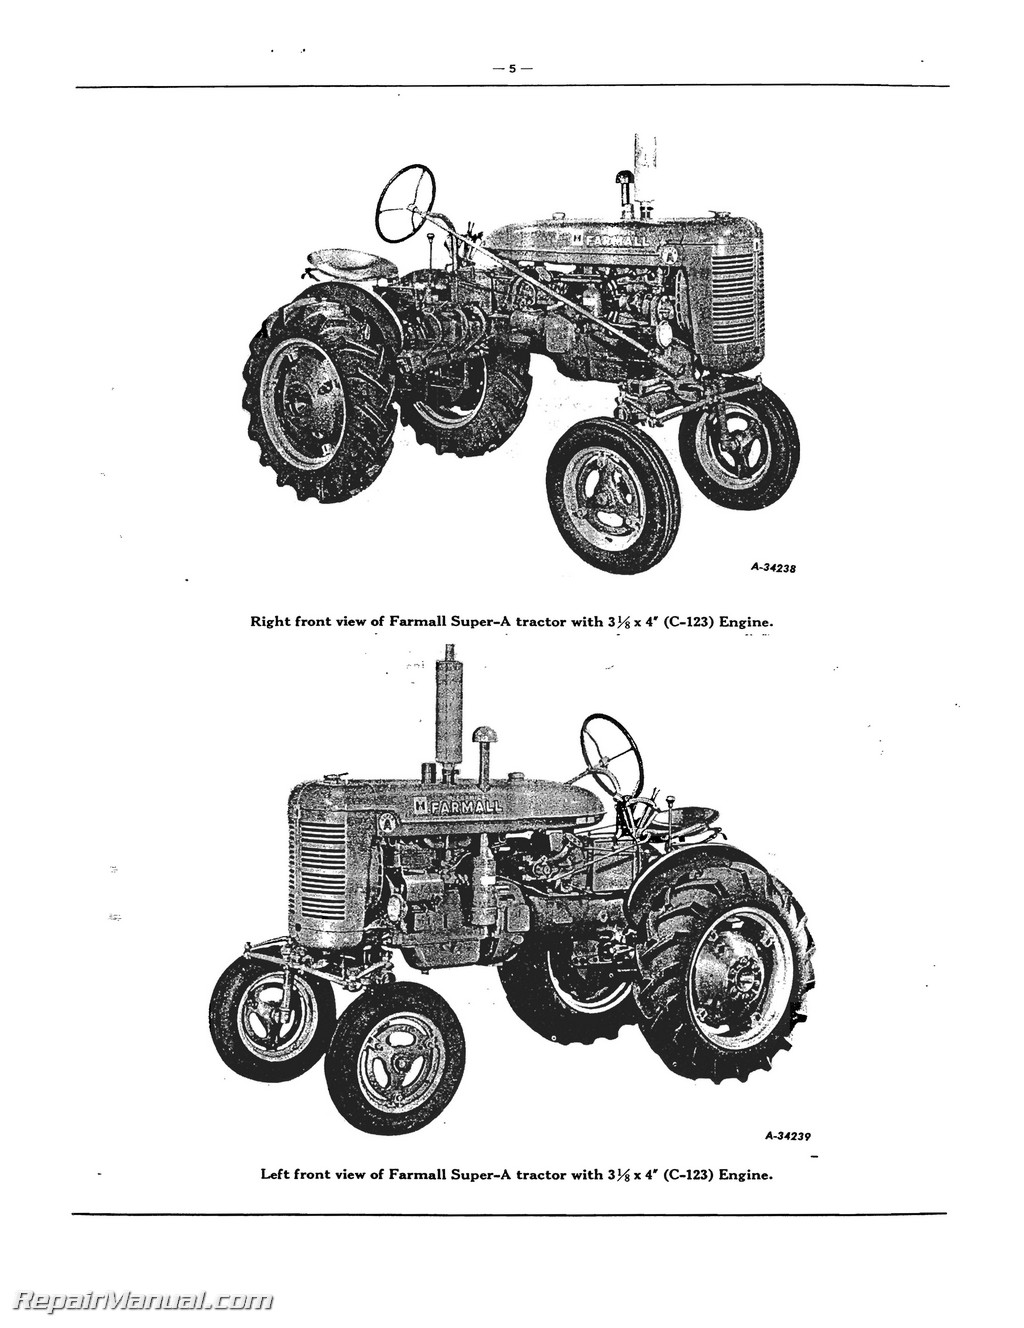 Wiring Diagram For Farmall 806 Tractor